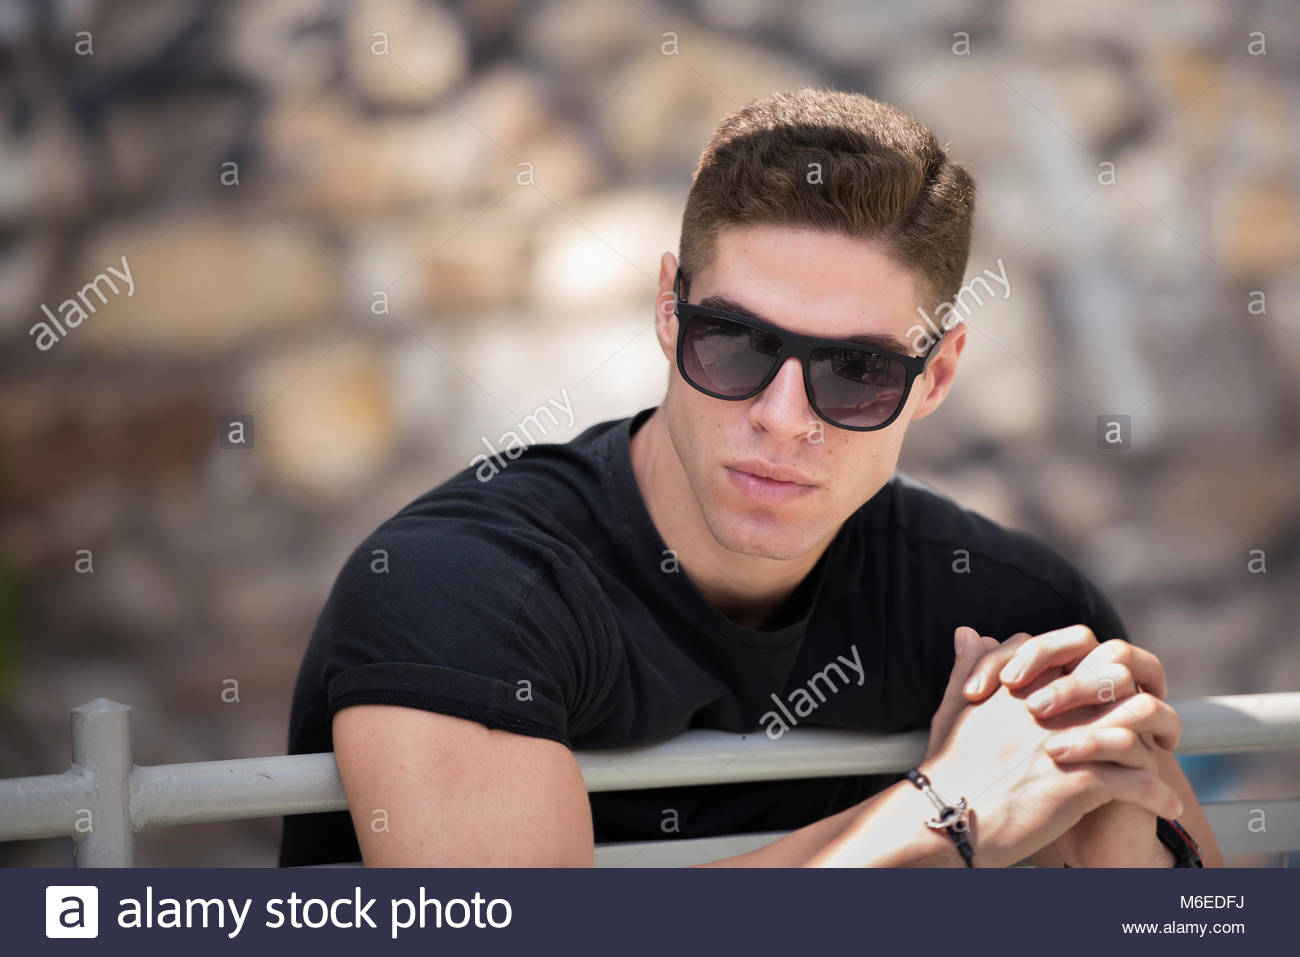 Man with sort ahir leaning lean on banister wear sunglasses looking away - Stock Image